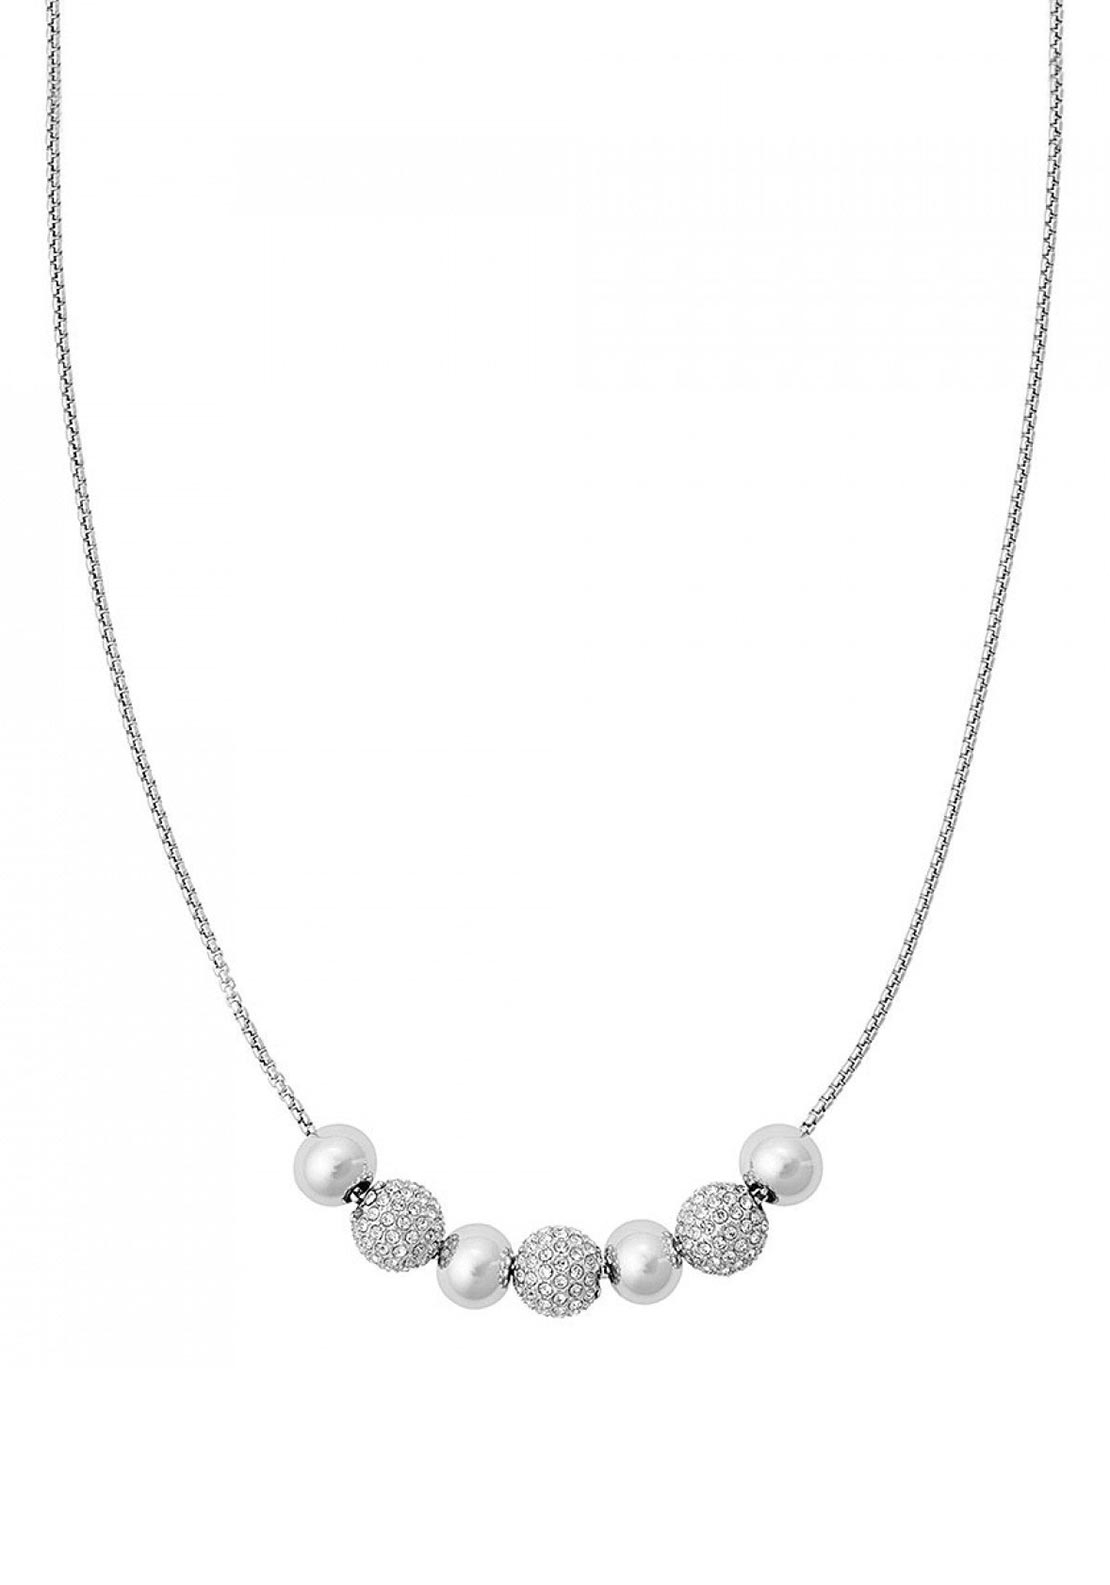 Michael Kors Brilliance Bead Necklace, Silver